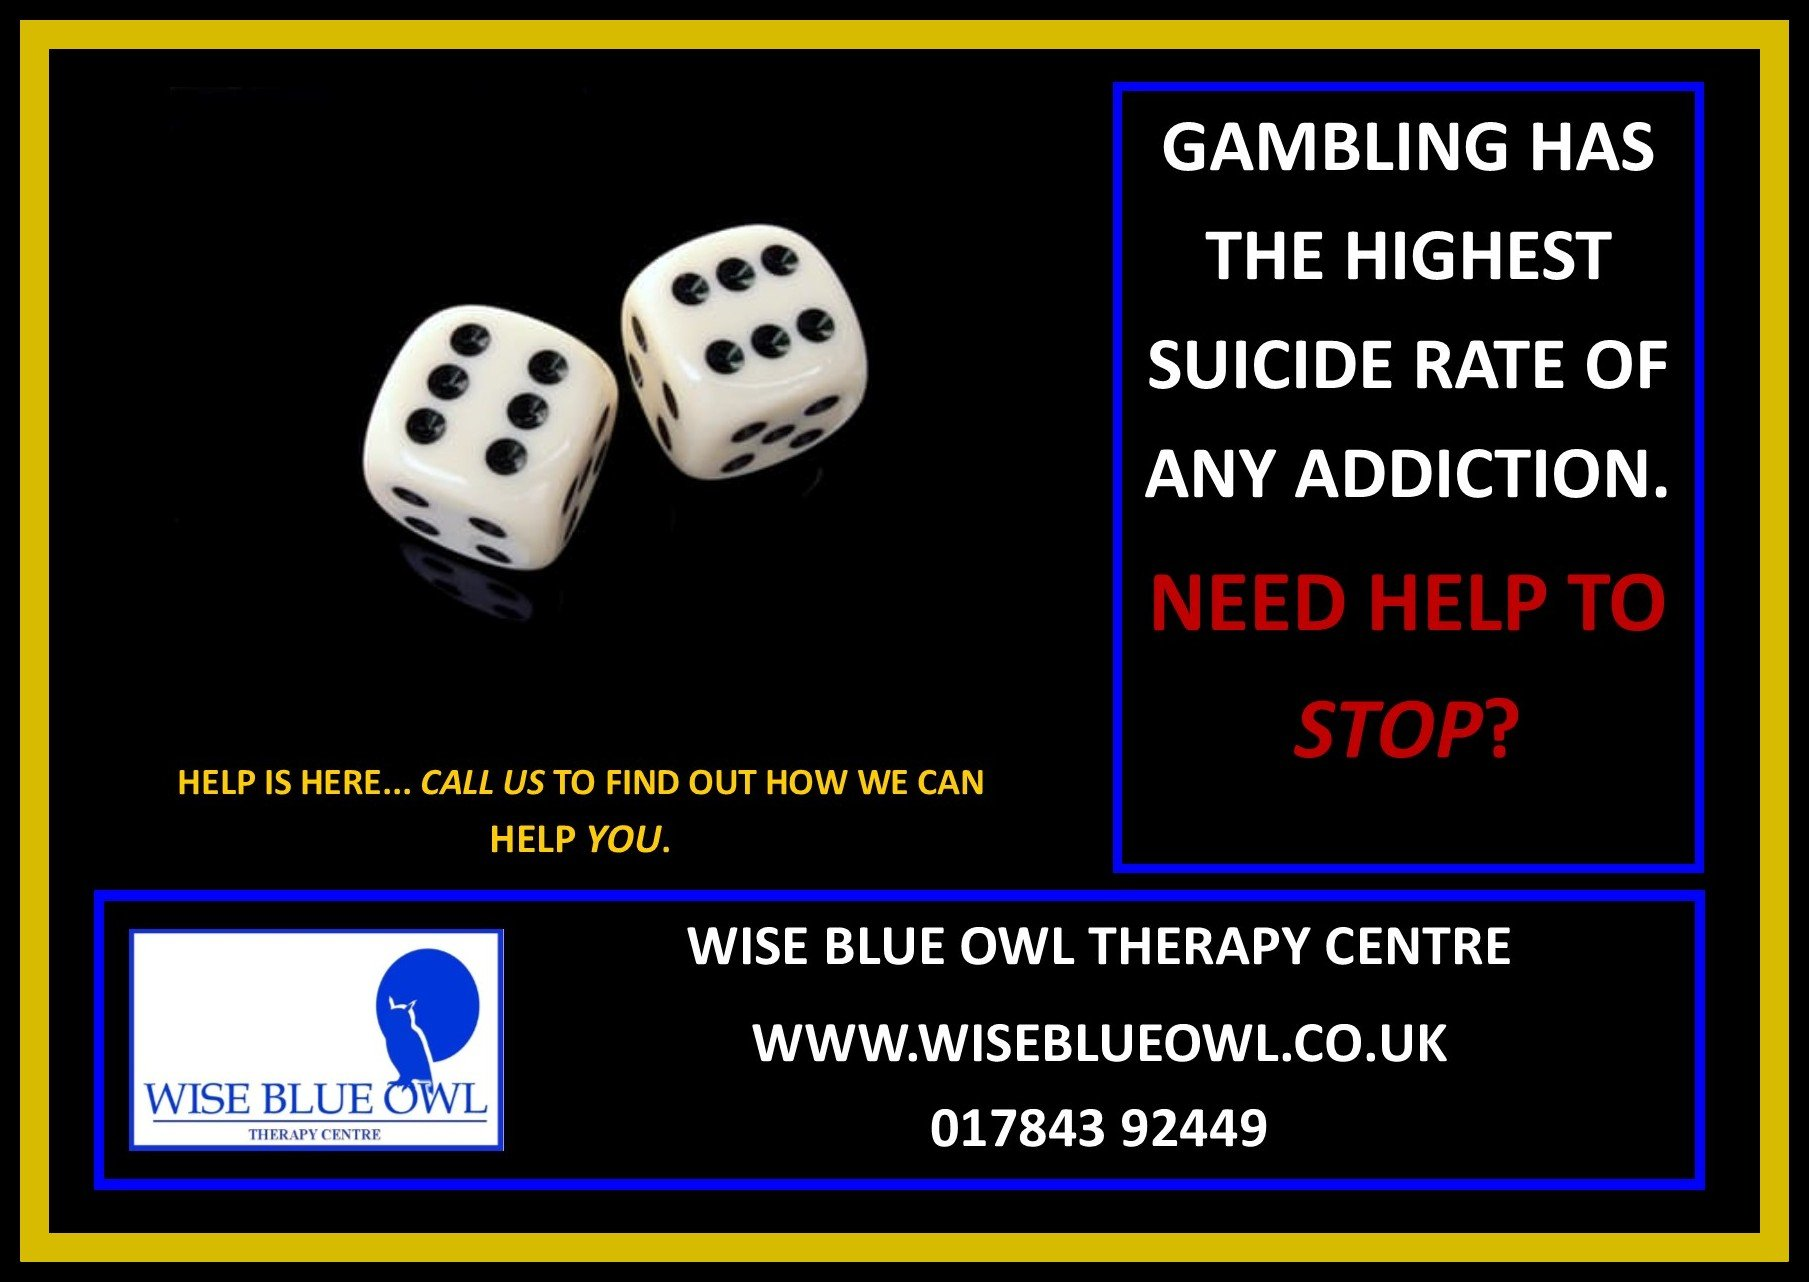 gambling addiction poster for wise blue owl therapy centre